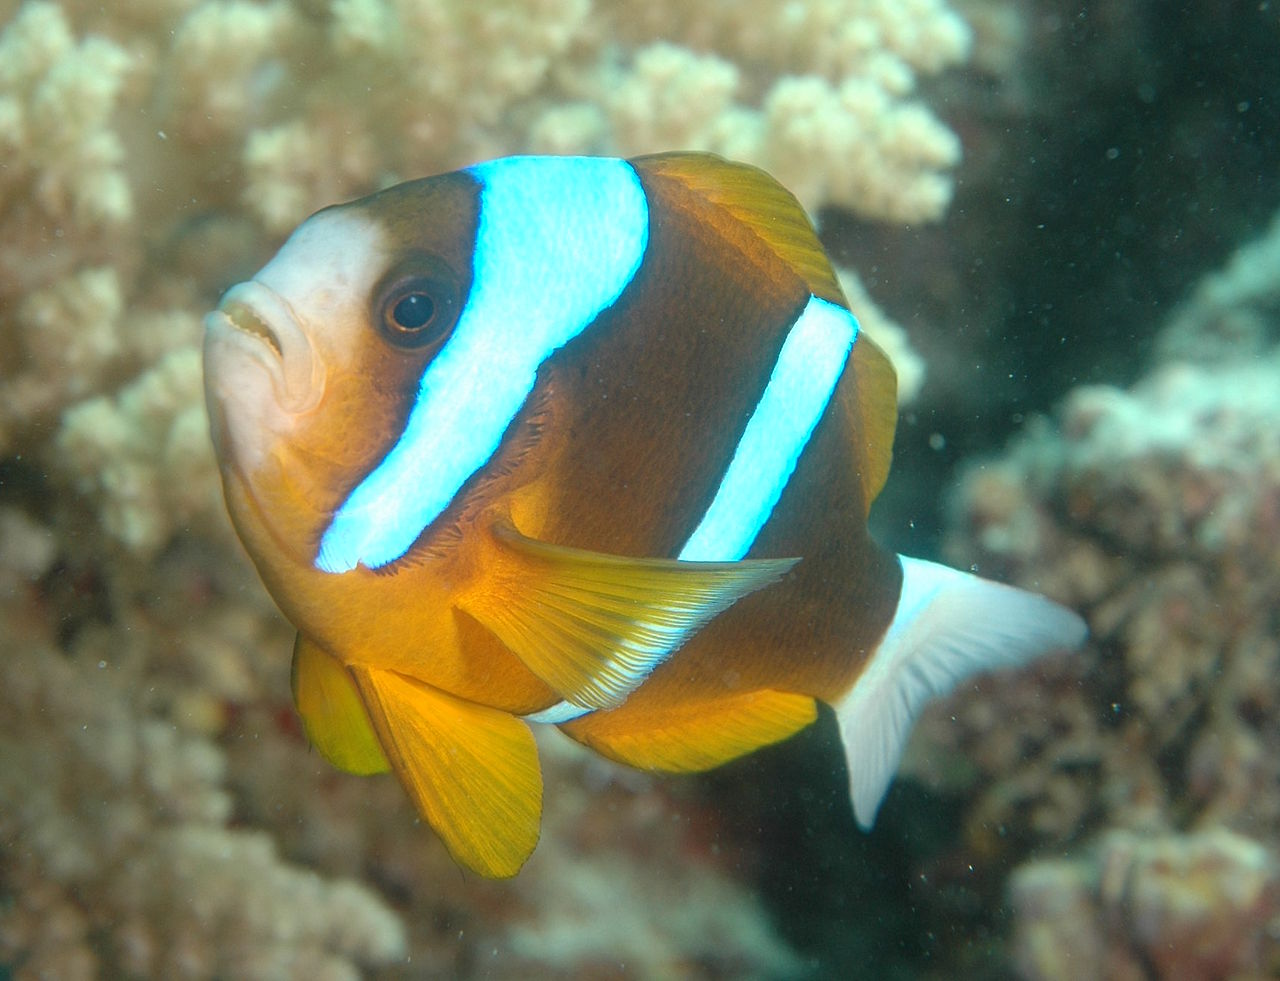 Amphiprion akyndinos on the Great Barrier Reef at Cairns, Australia - image by Leonard Low - Wikimedia / Creative Commons